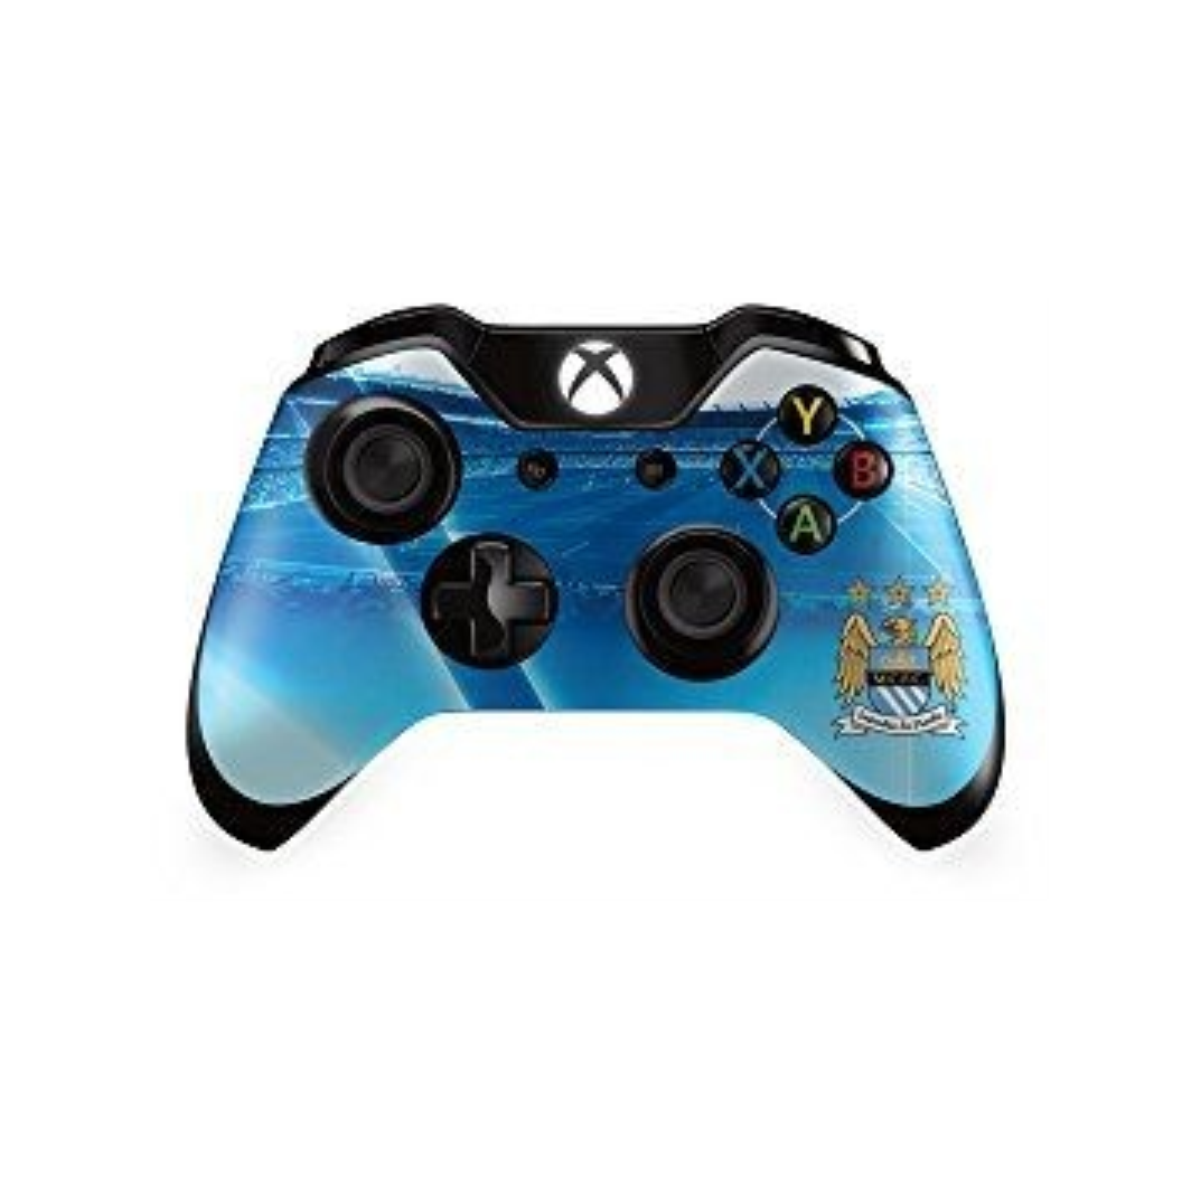 inToro Manchester City FC Skin for Xbox One Controller